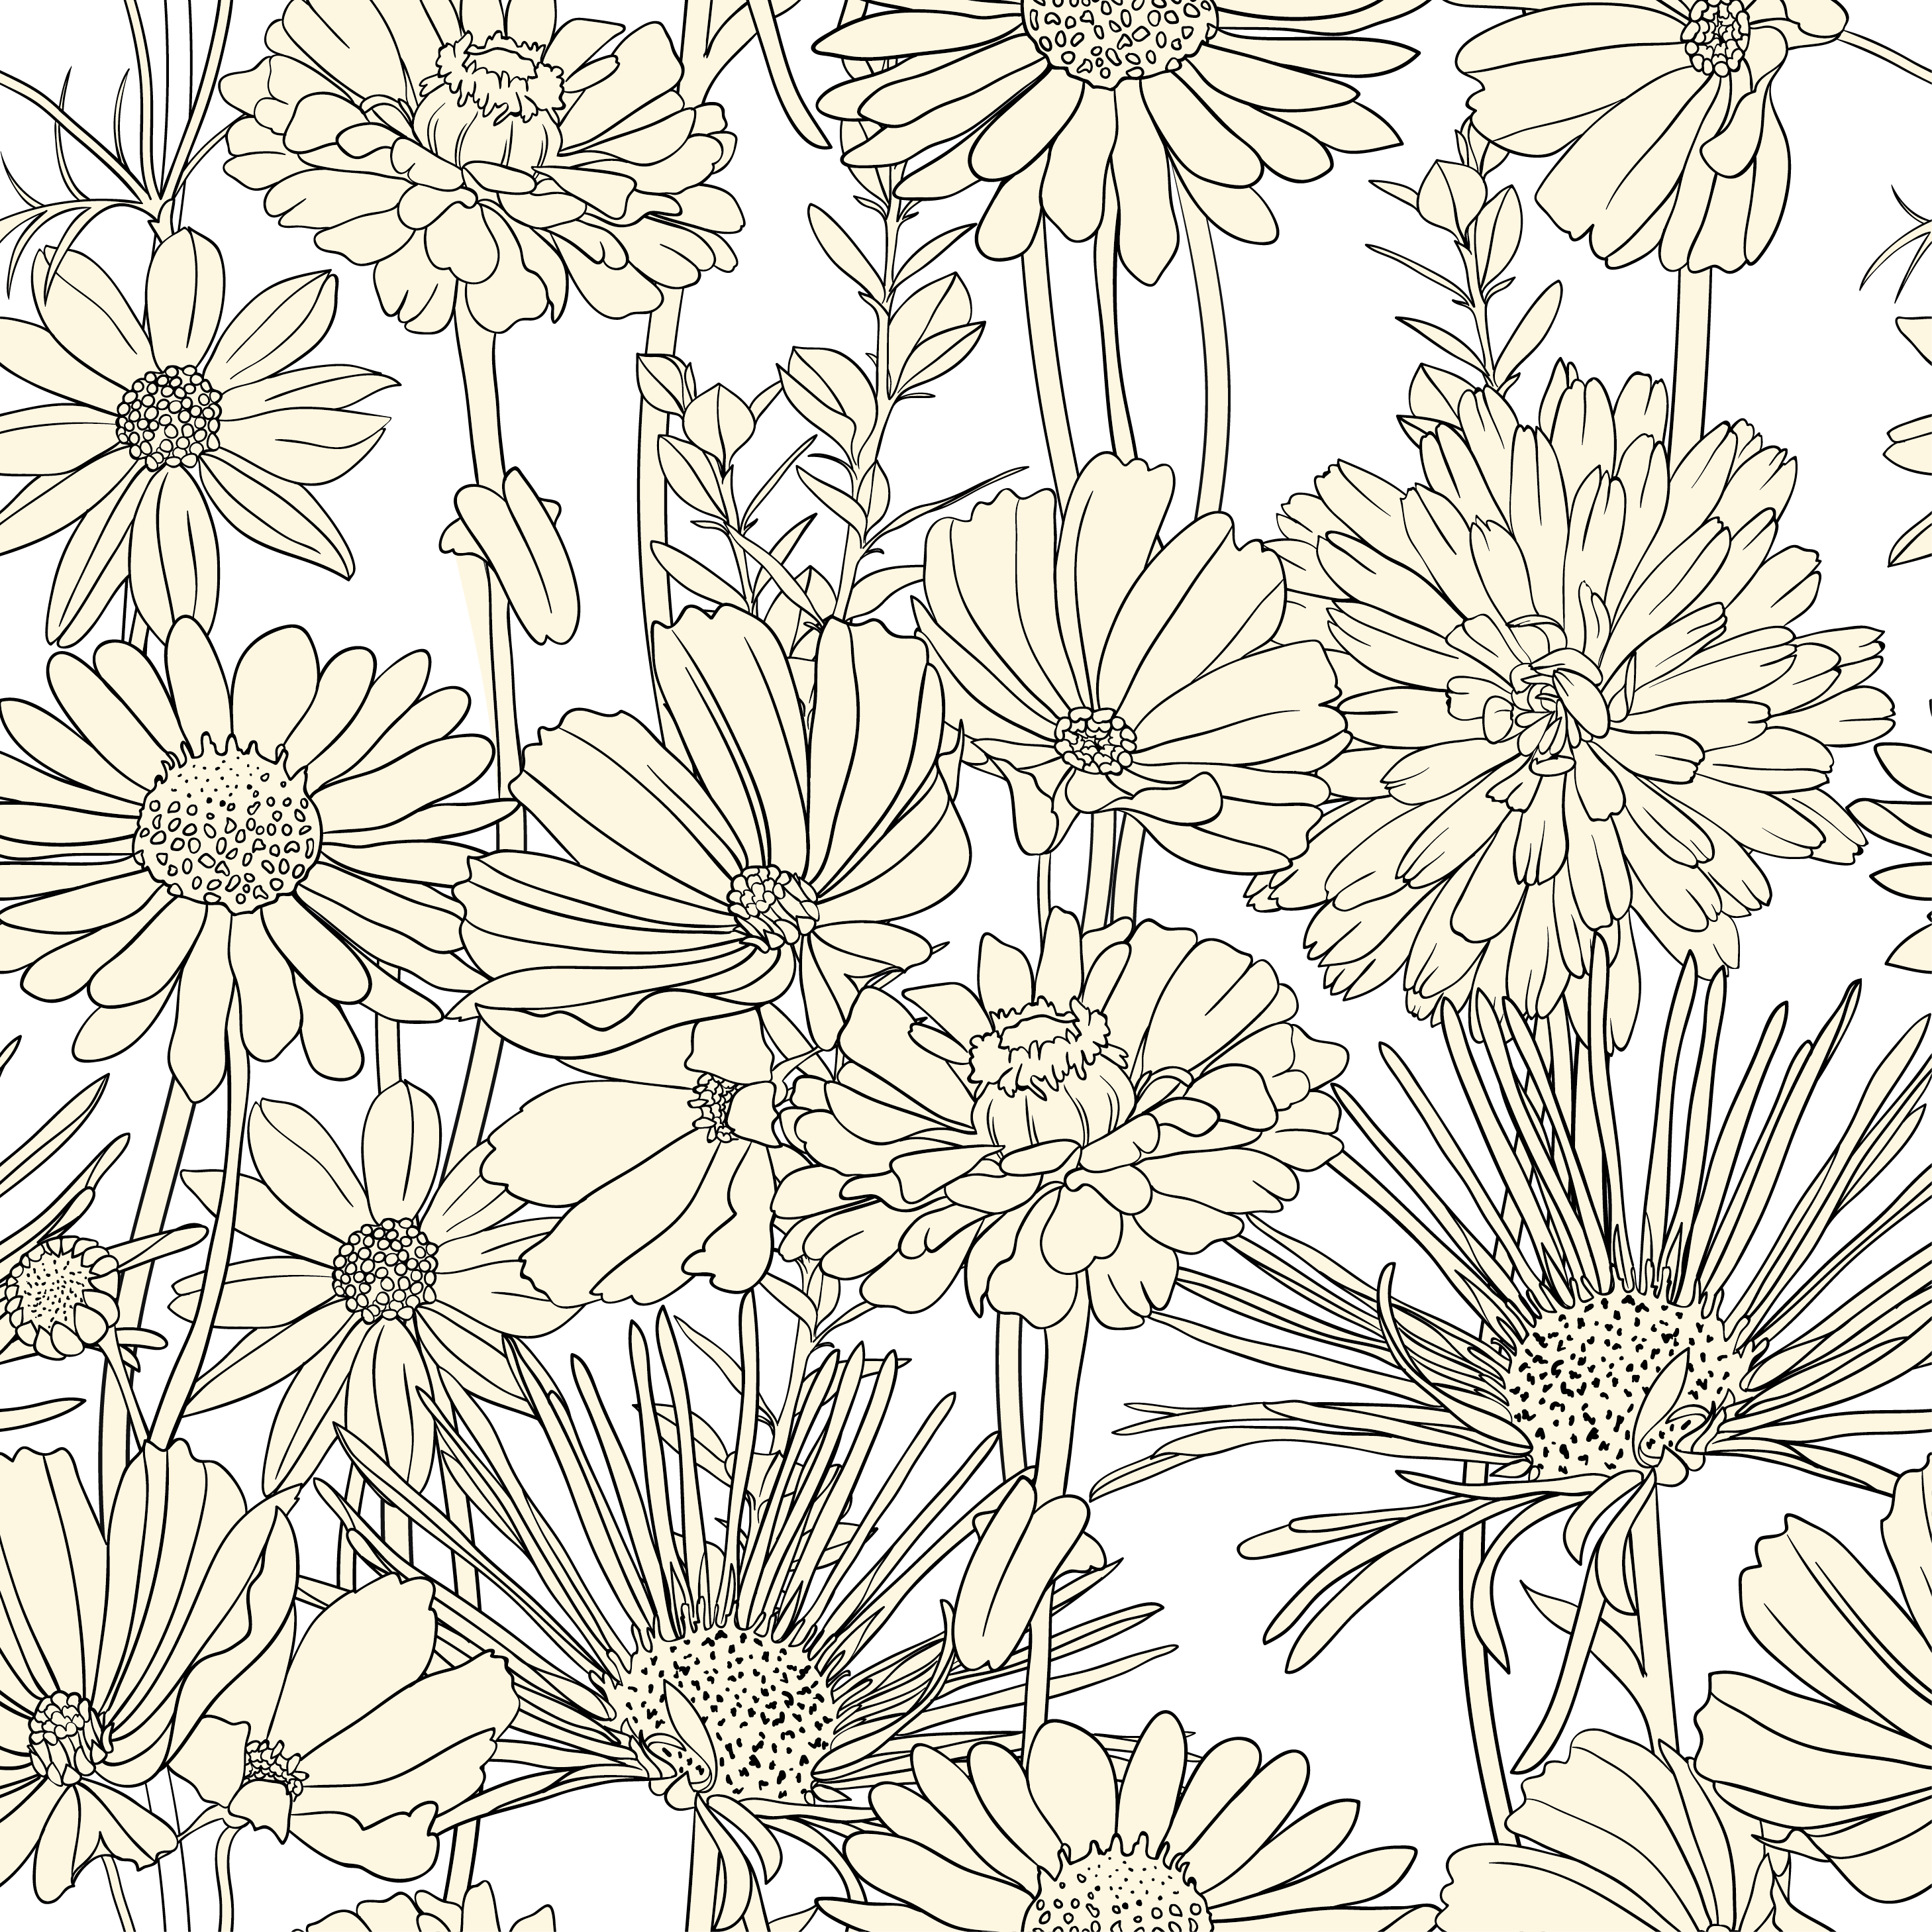 White drawing black background. Draw flowers pattern and